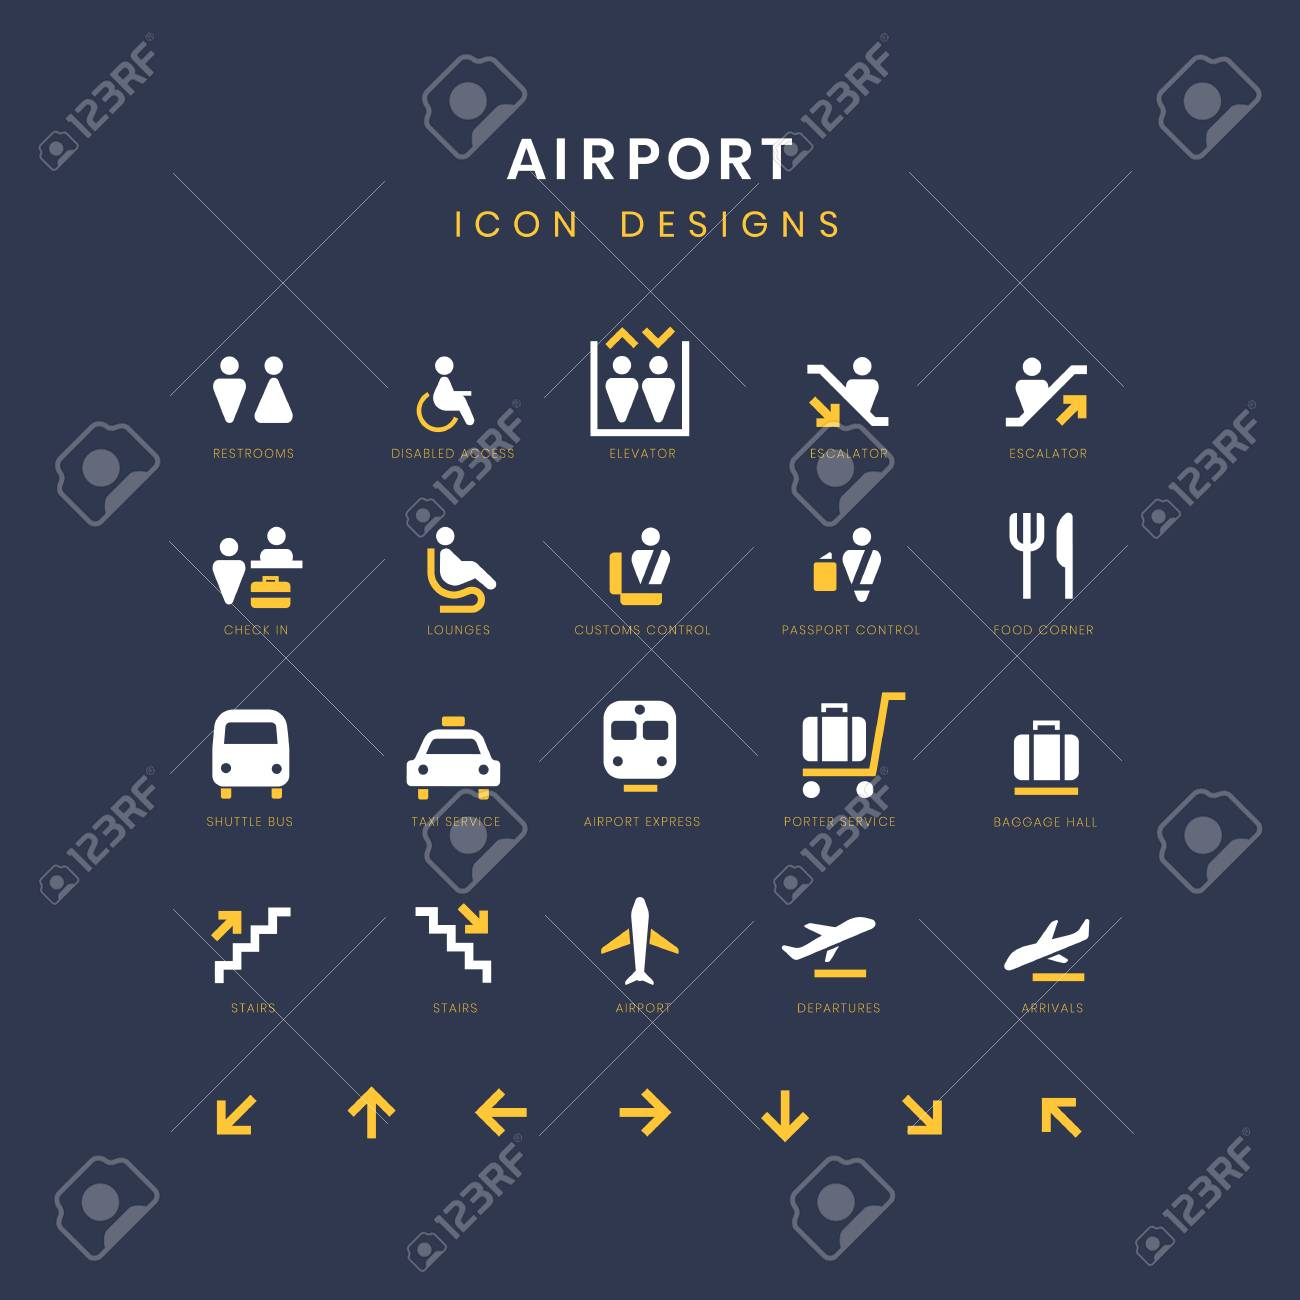 Airport service signs vector set - 125971156